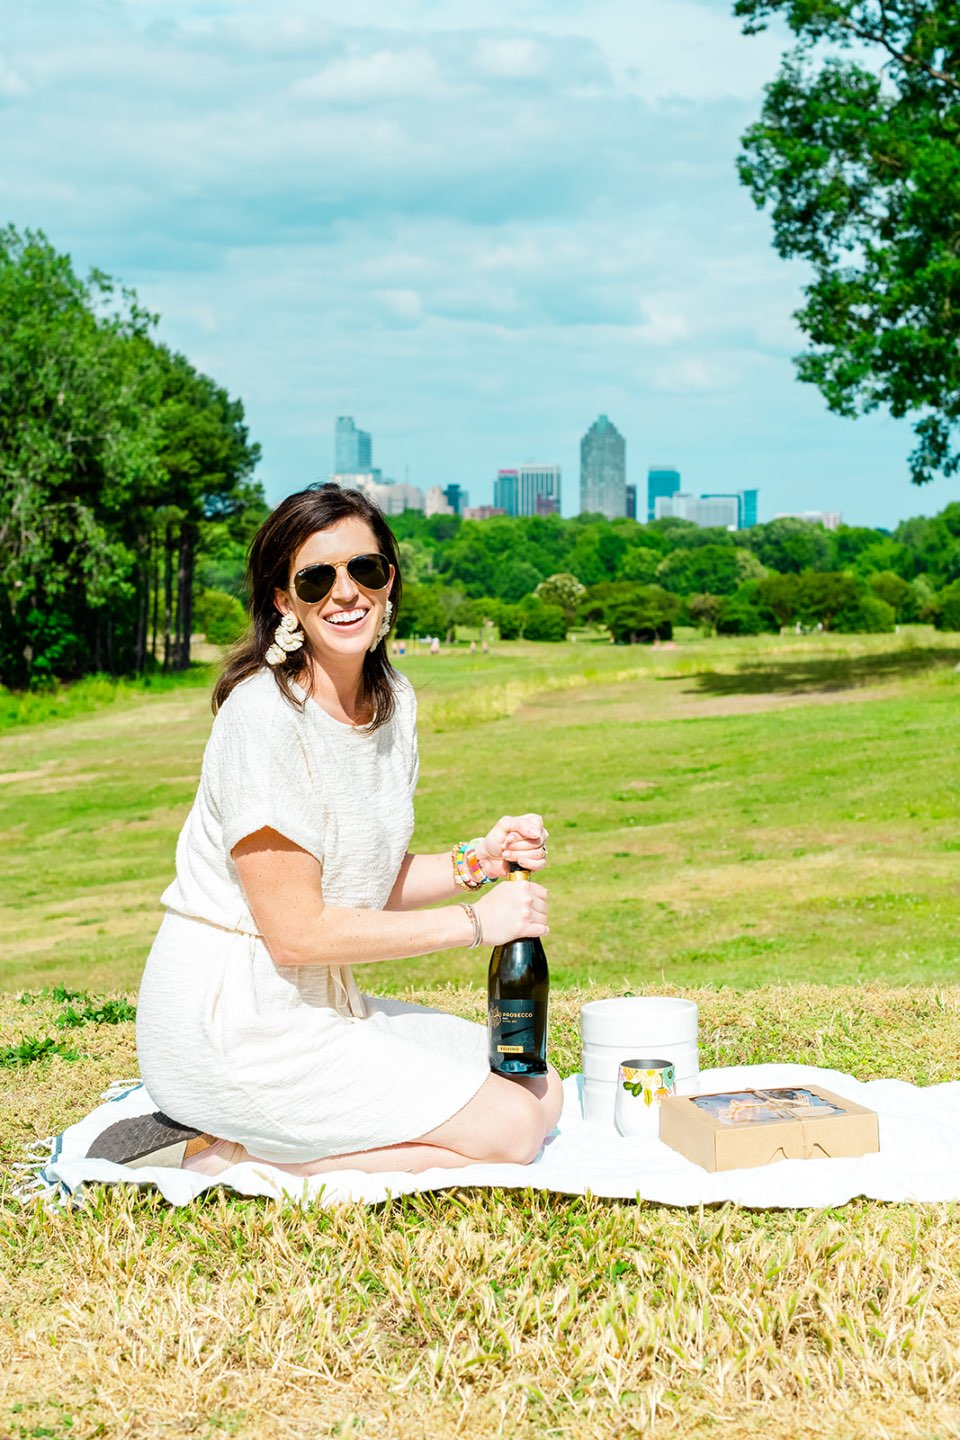 The Top 3 Places to Have a Picnic in Raleigh - I'm Fixin' To - @mbg0112 | Picnic in Raleigh by popular North Carolina blog, I'm Fixin' To: image of a woman sitting on a blanket at Dorothea Dix park and holding a bottle of wine.